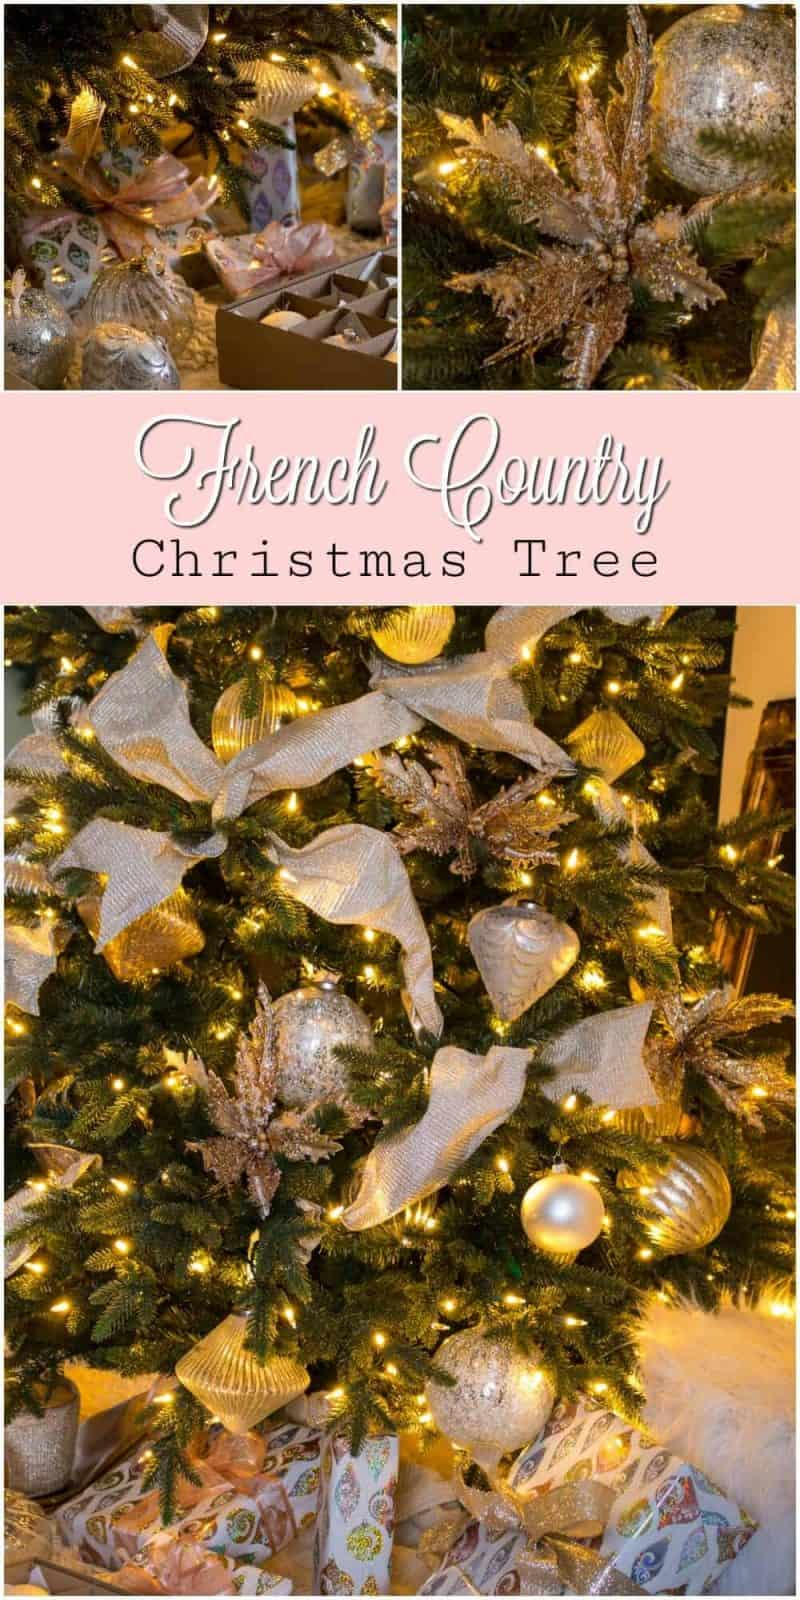 Country Christmas Tree.How To Decorate A French Country Christmas Tree The How To